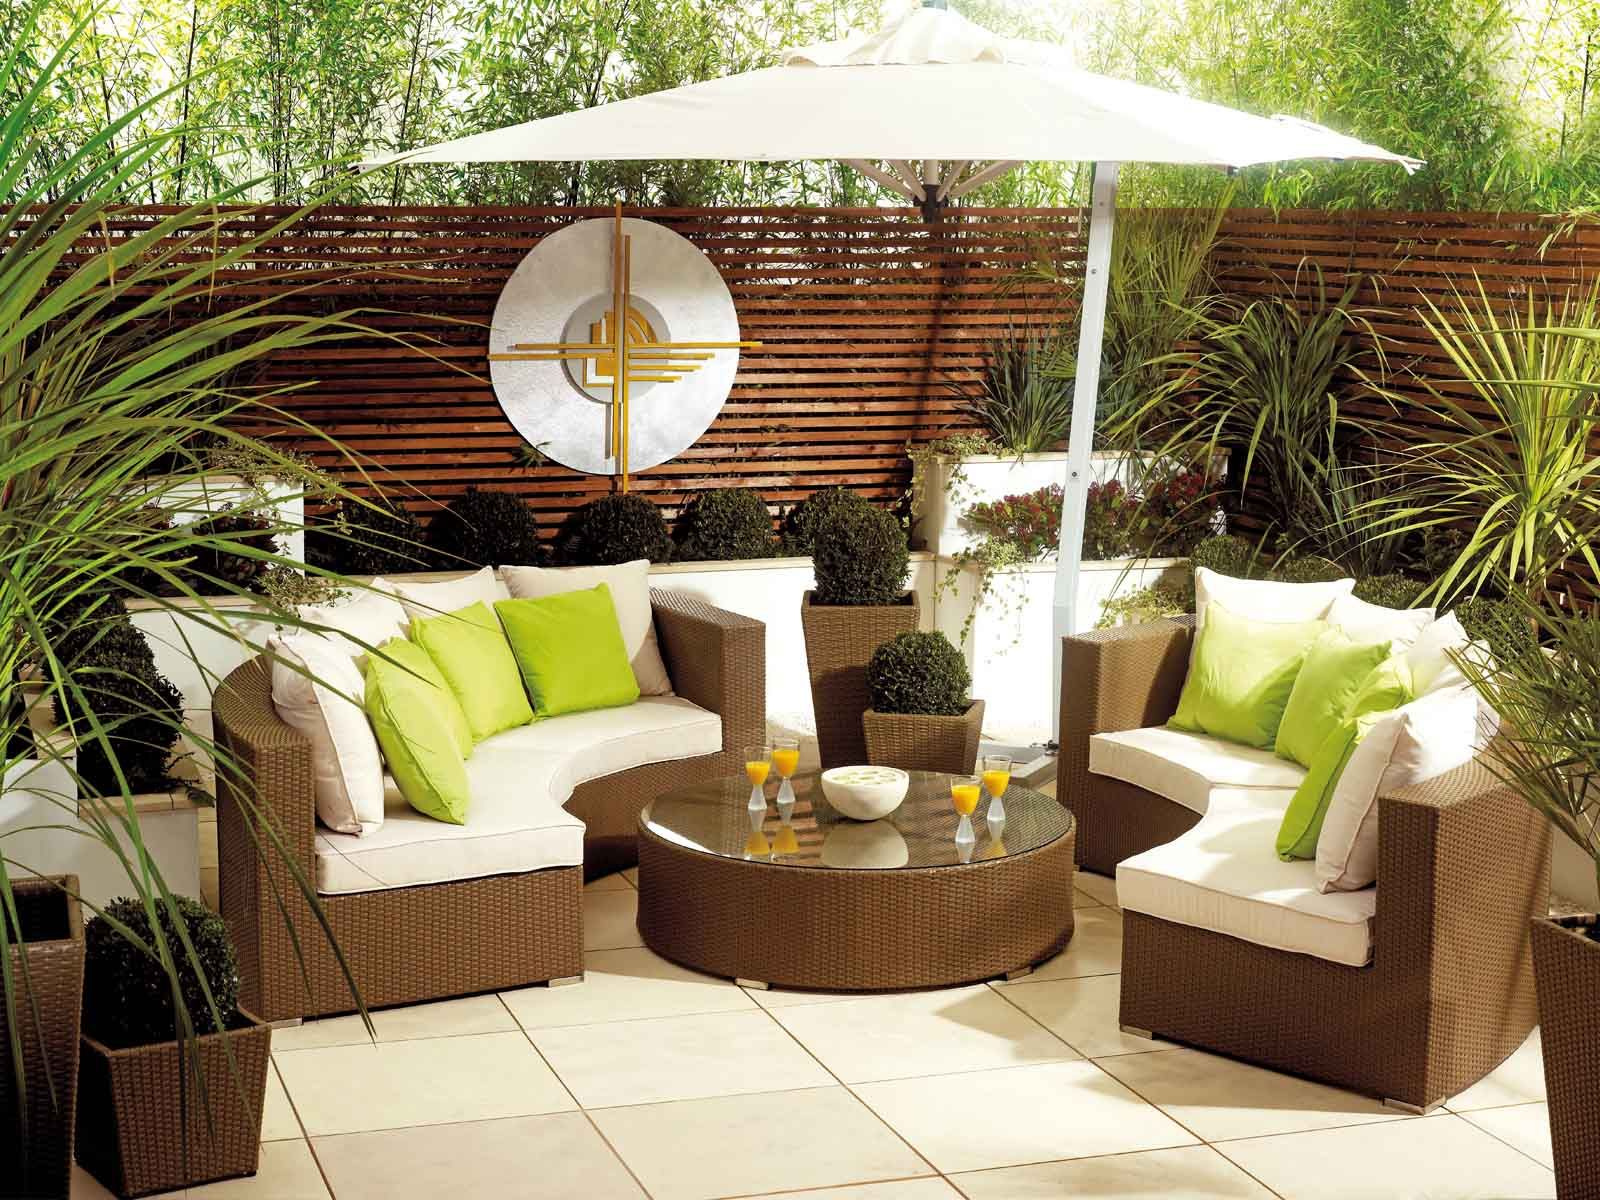 Garden Furniture Design Ideas 20 beautiful outdoor living room designs that will delight you